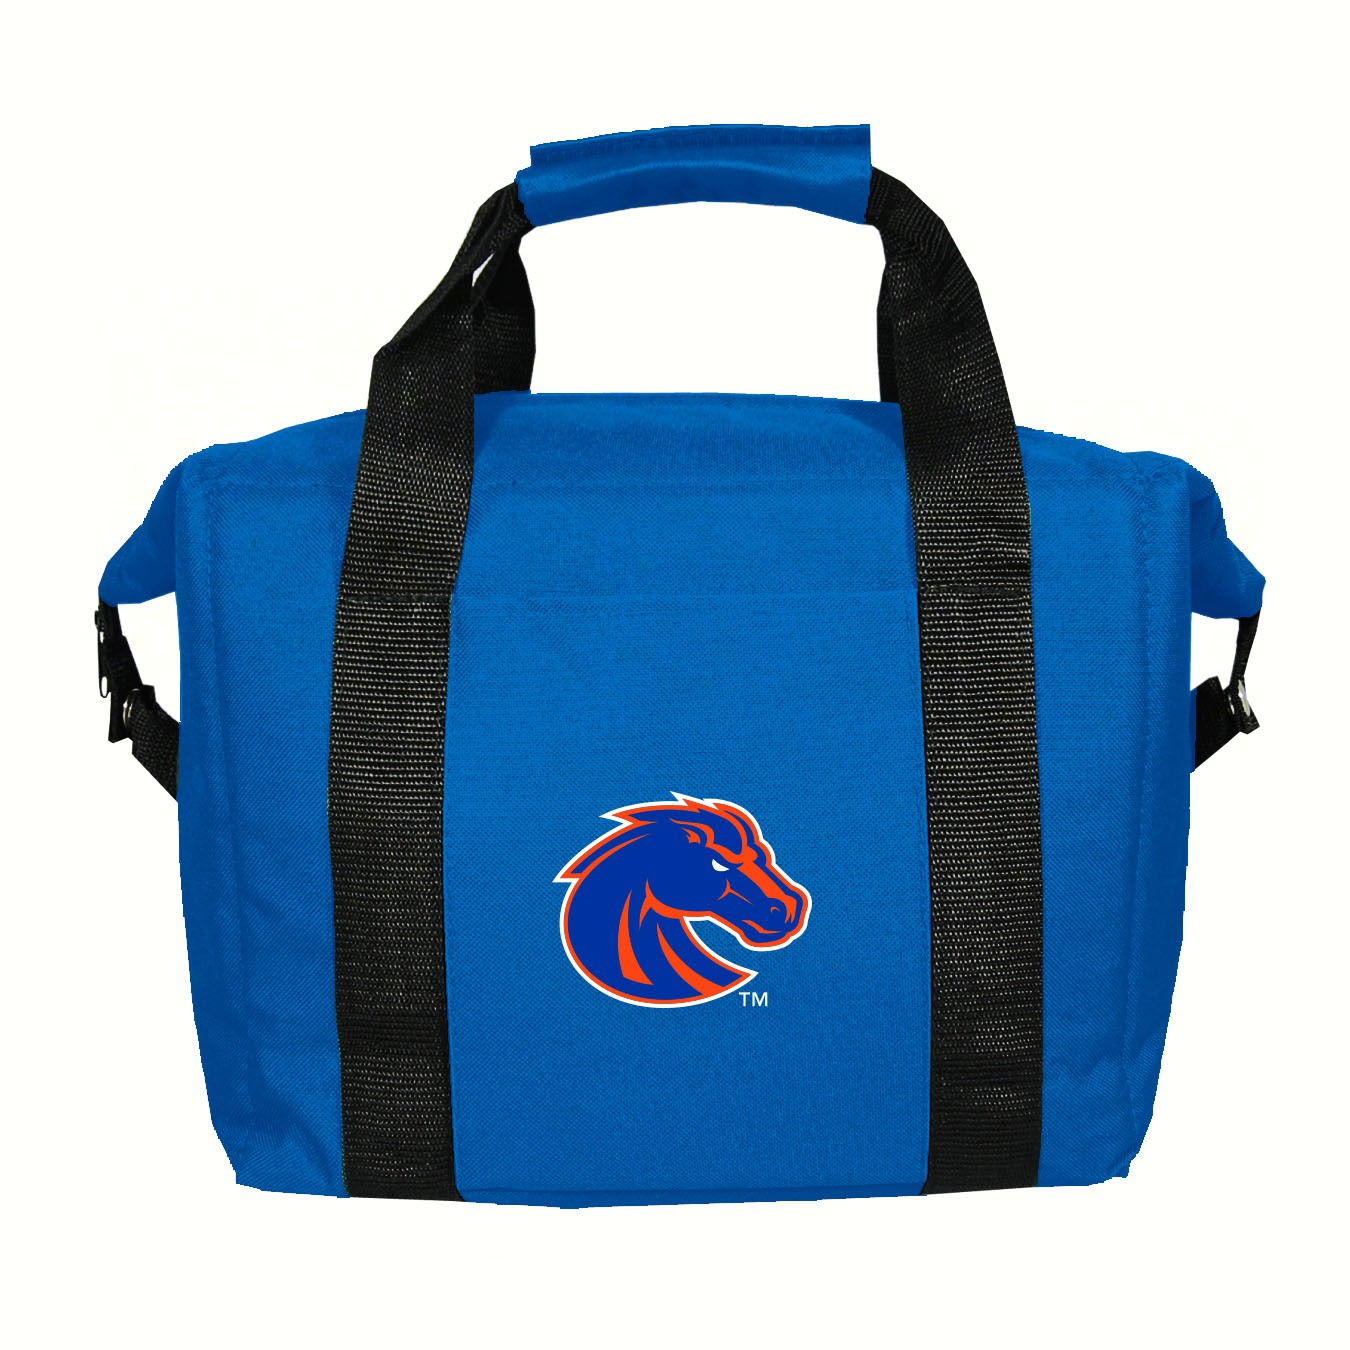 Kooler Bag - Boise State Broncos (Holds a 12 pack)